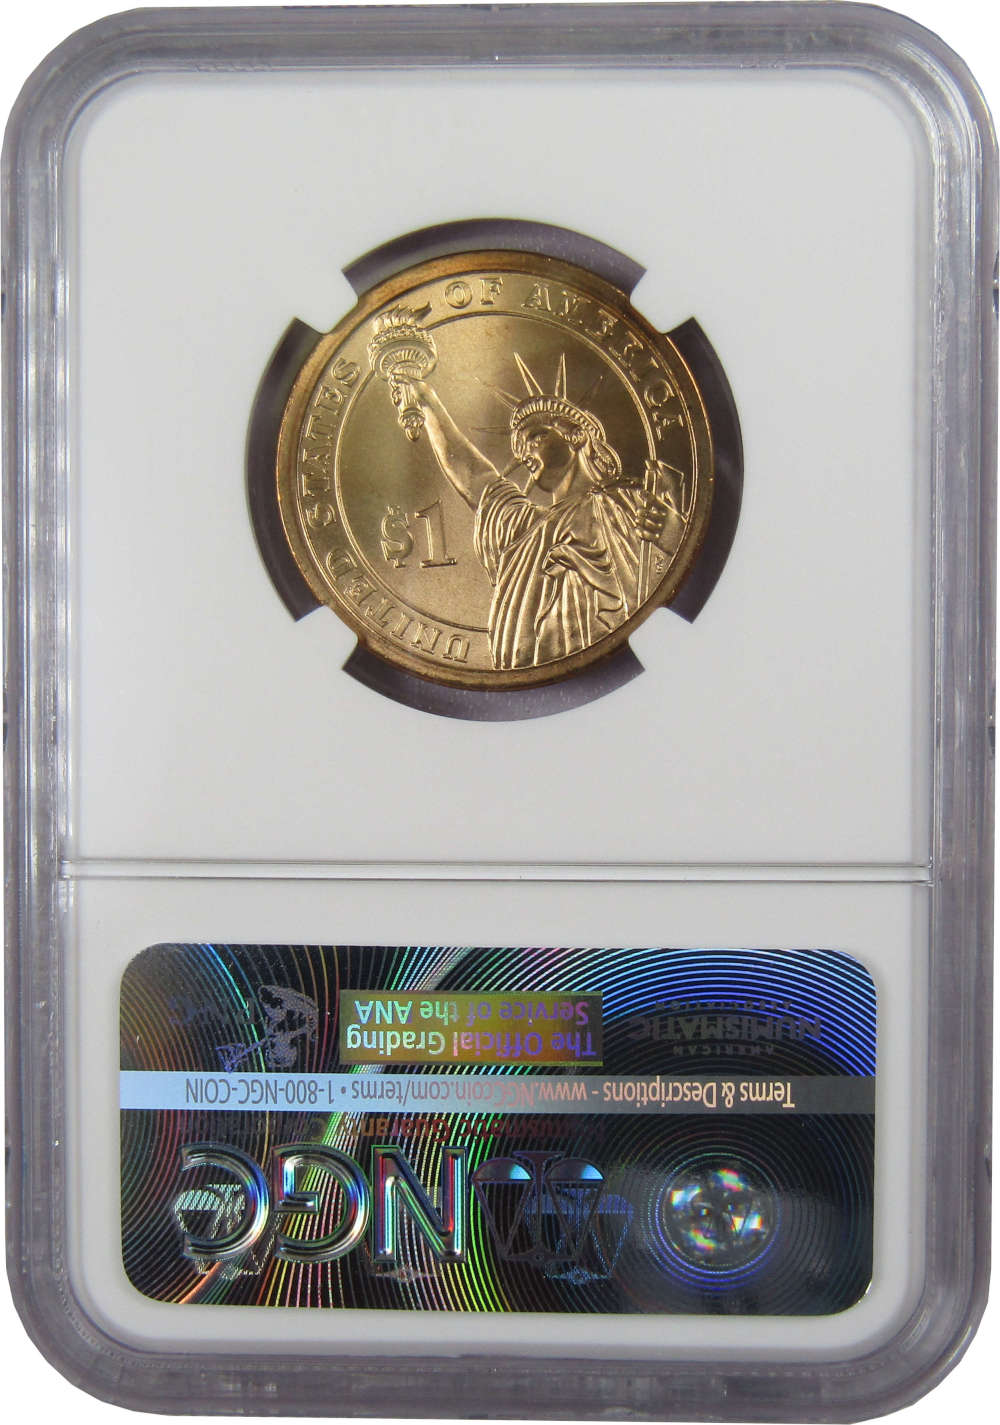 2008 $1 Andrew Jackson Presidential Dollar Uncirculated Missing Edge Lettering